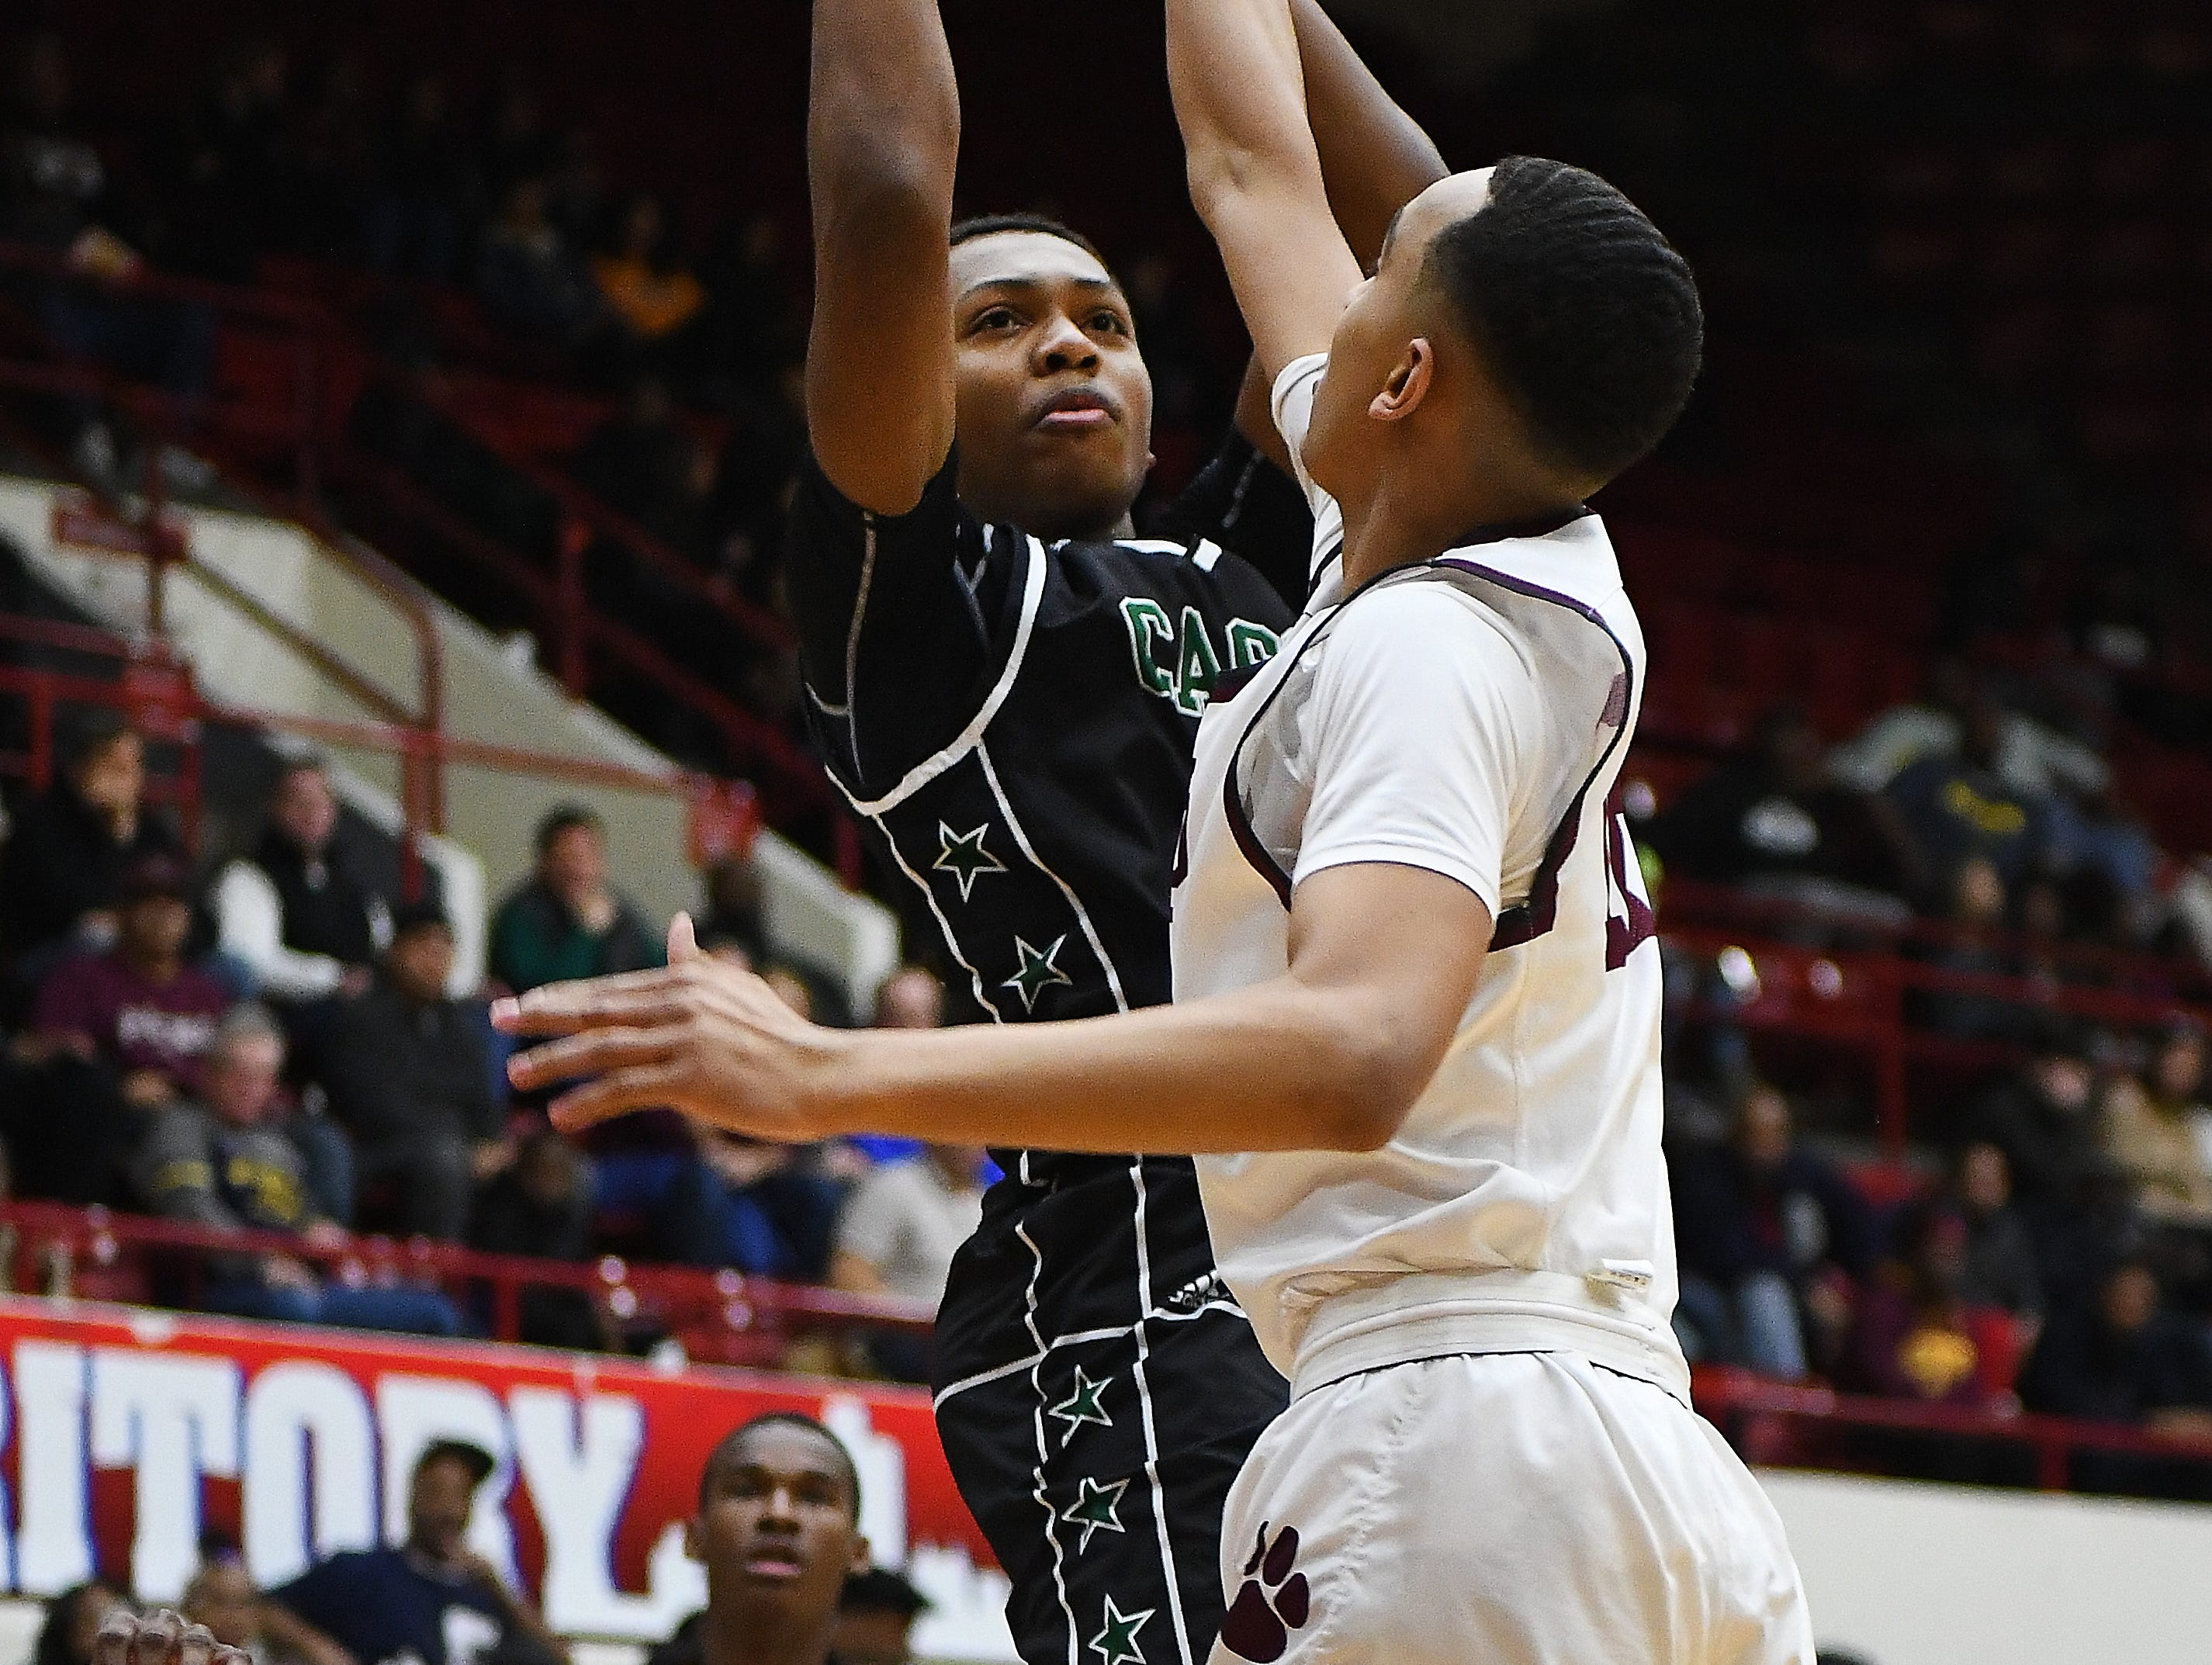 Cass Tech's Isaiah Sanders puts up a shot over U of D Jesuit's J. T. Morgan in the first half of the championship game.